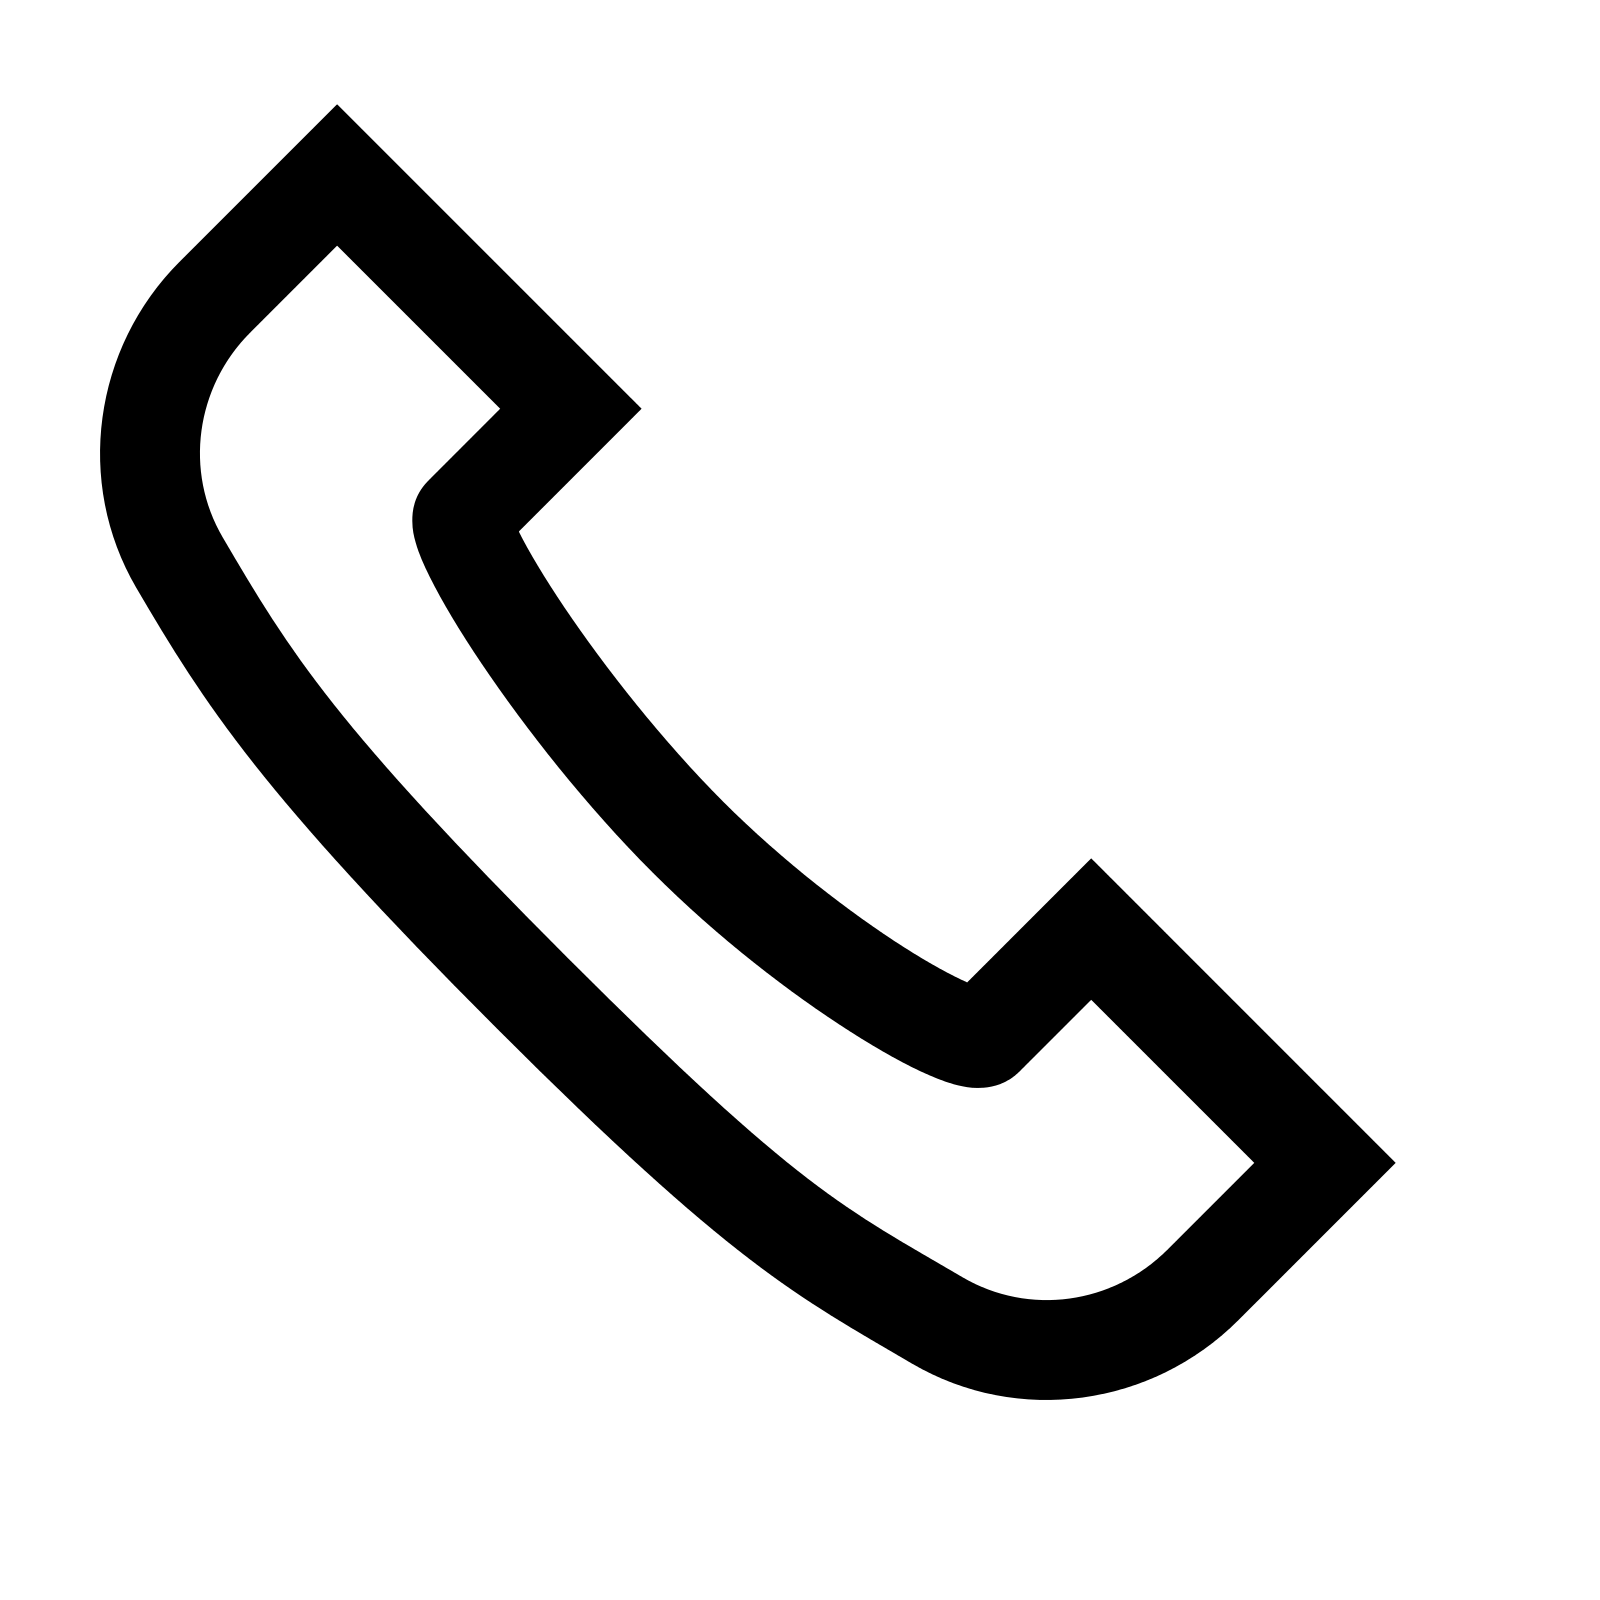 hight resolution of vector contact email signature free cell phone icon